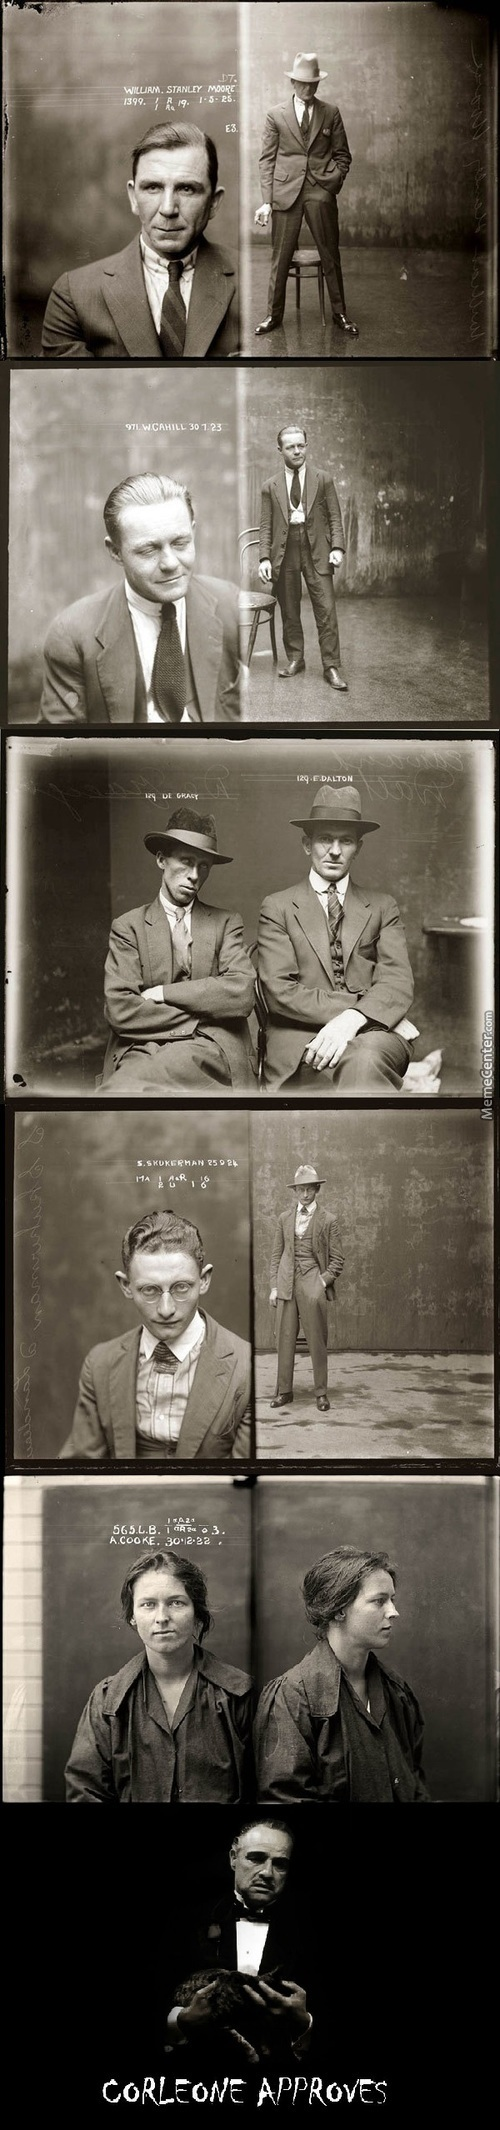 These 1920 Criminals Have More Style Than Most Of People Nowadays.